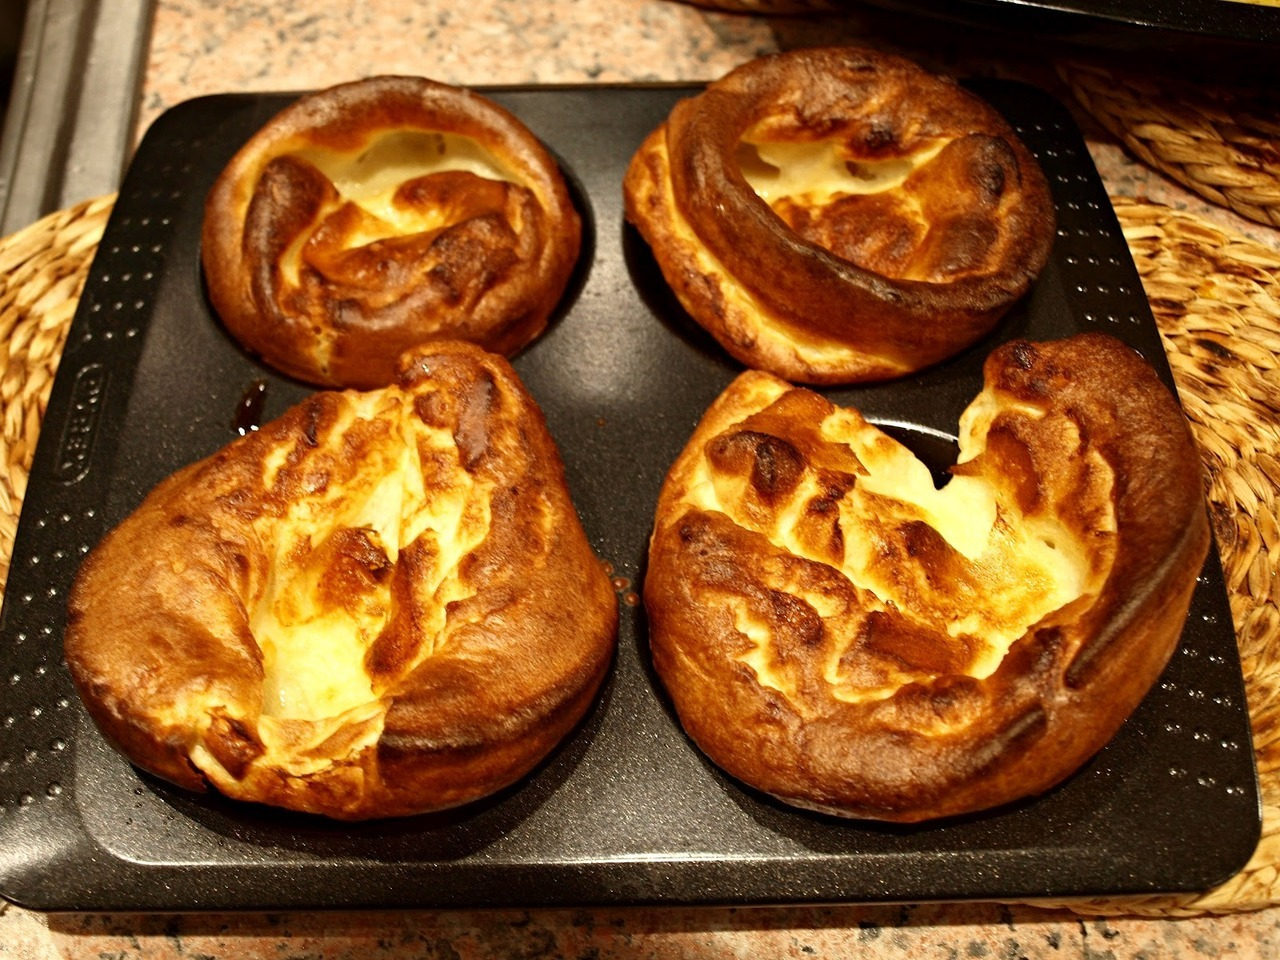 yorkshire pudding, as requested:-drooling? then you'll like these:- http://yummmaystuff.tumblr.com/